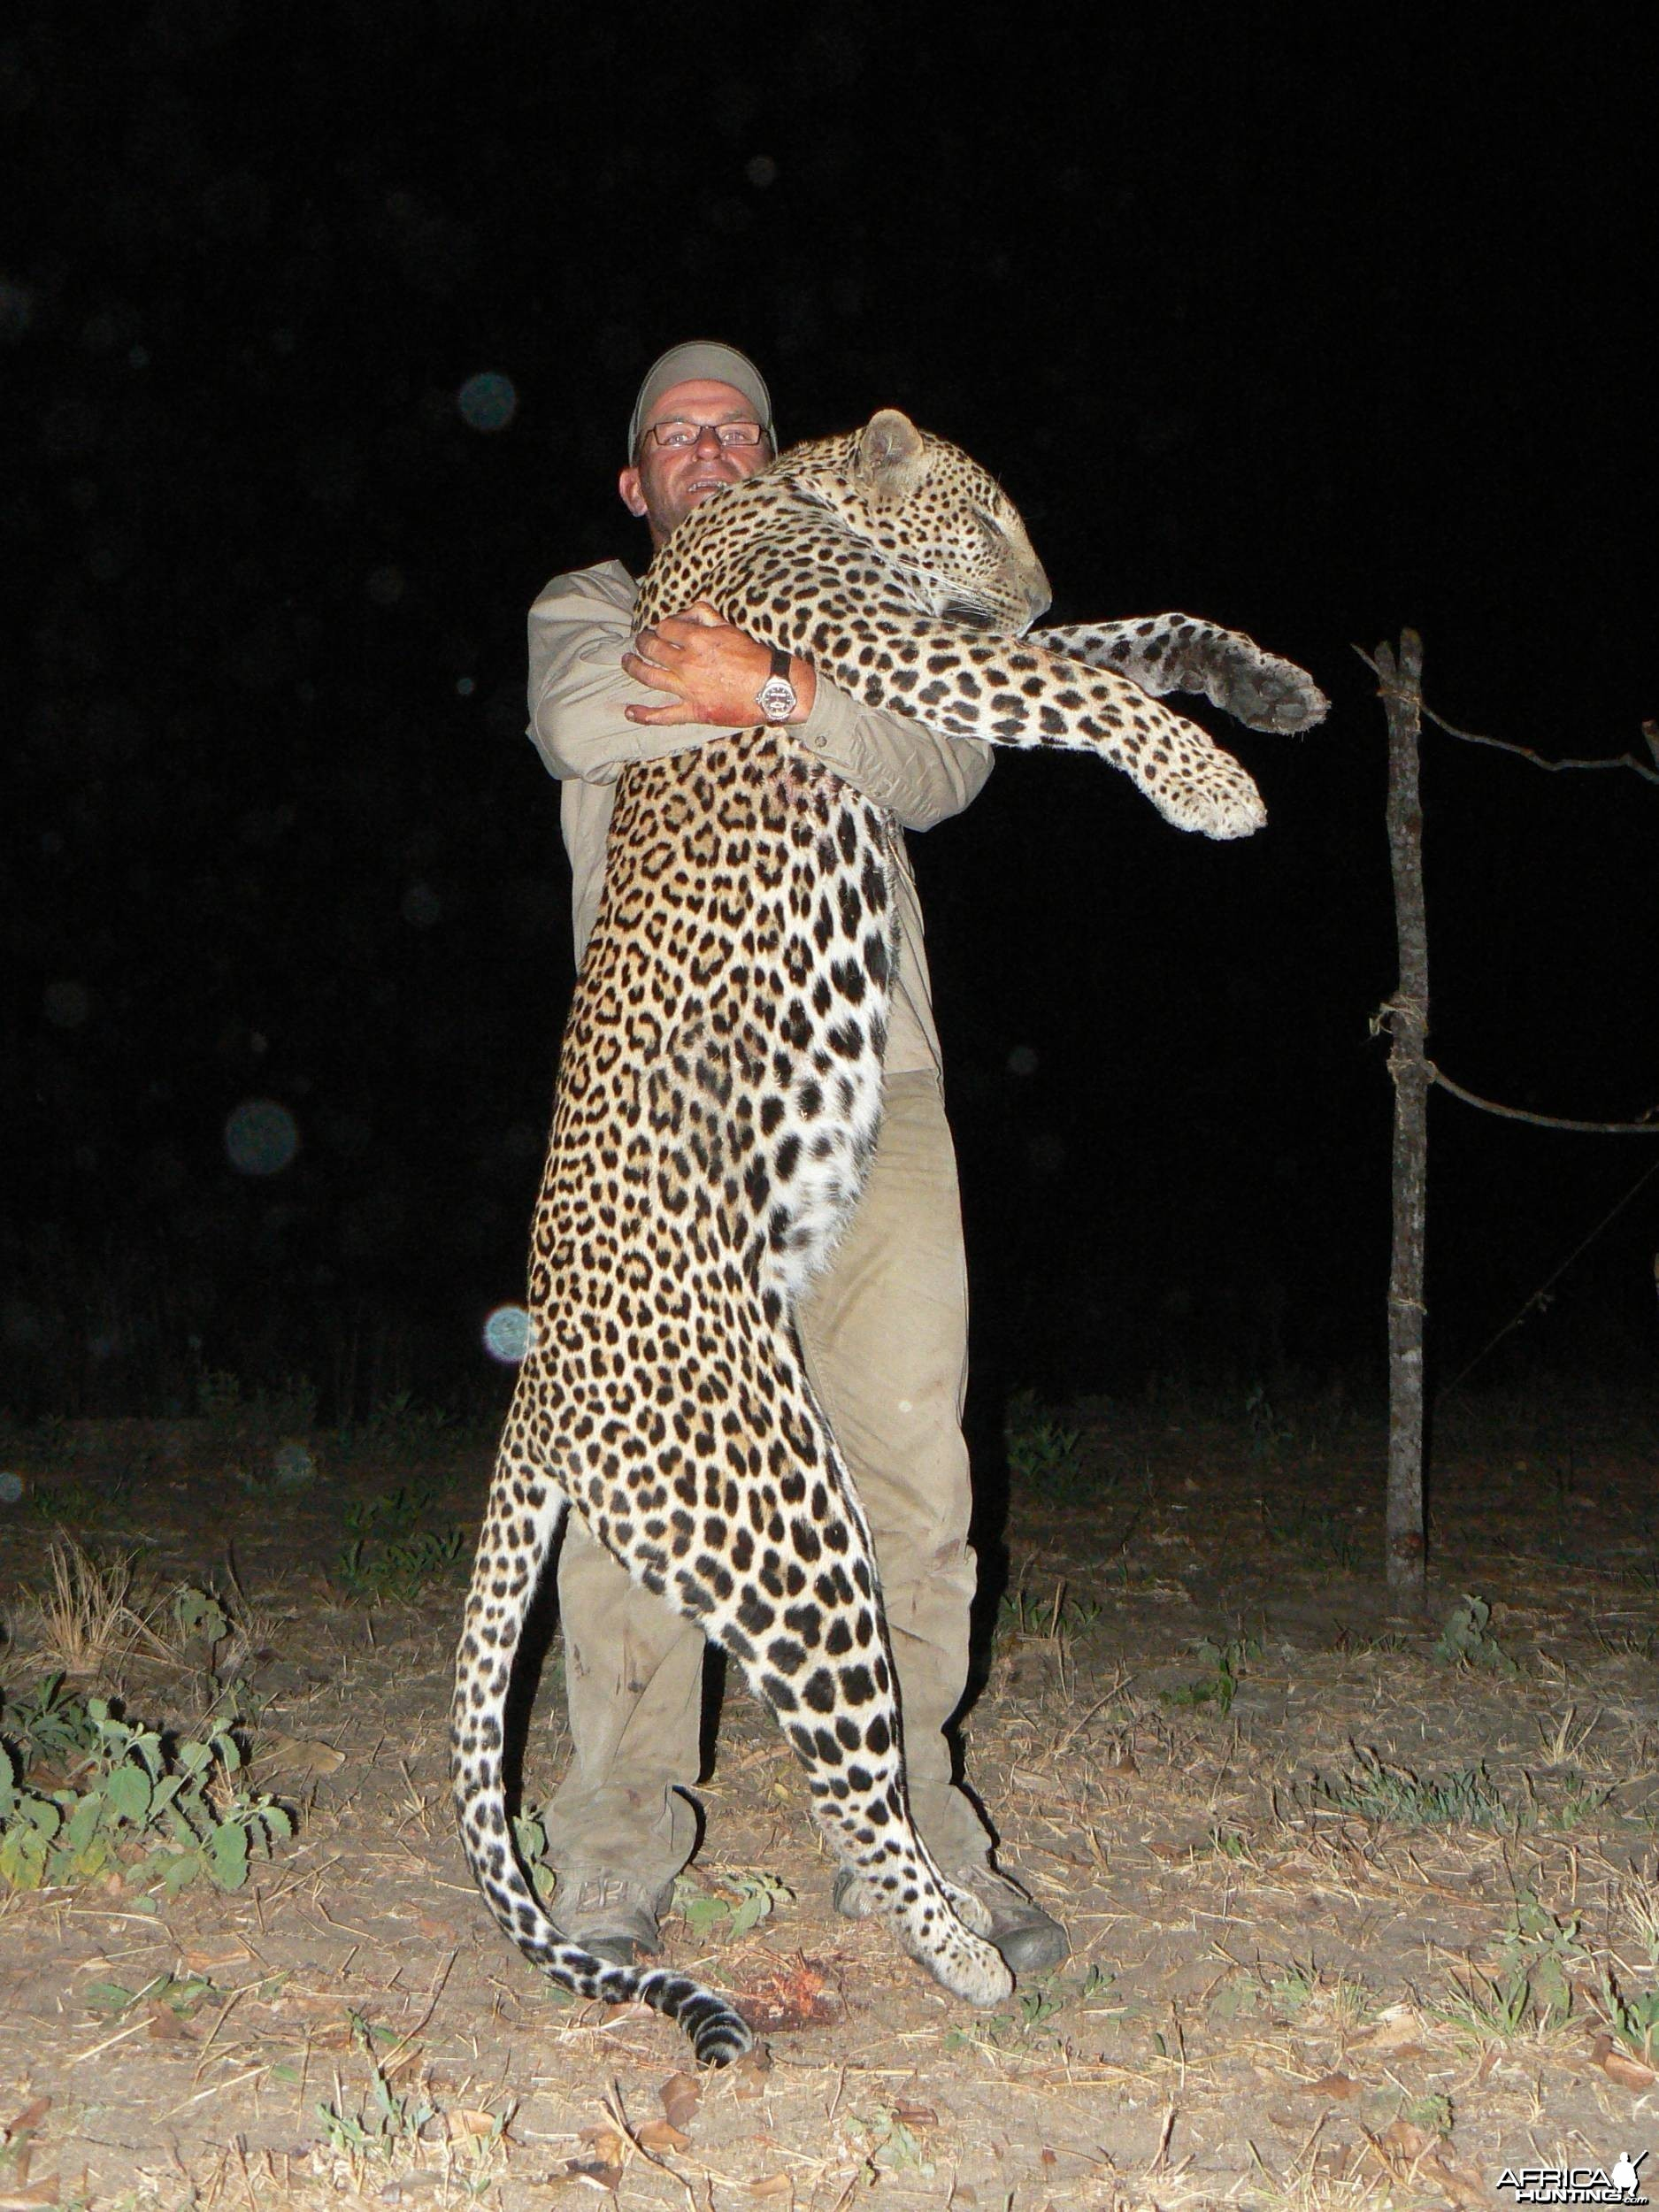 Leopard, 64kg from Selous game reserve. Tanzania